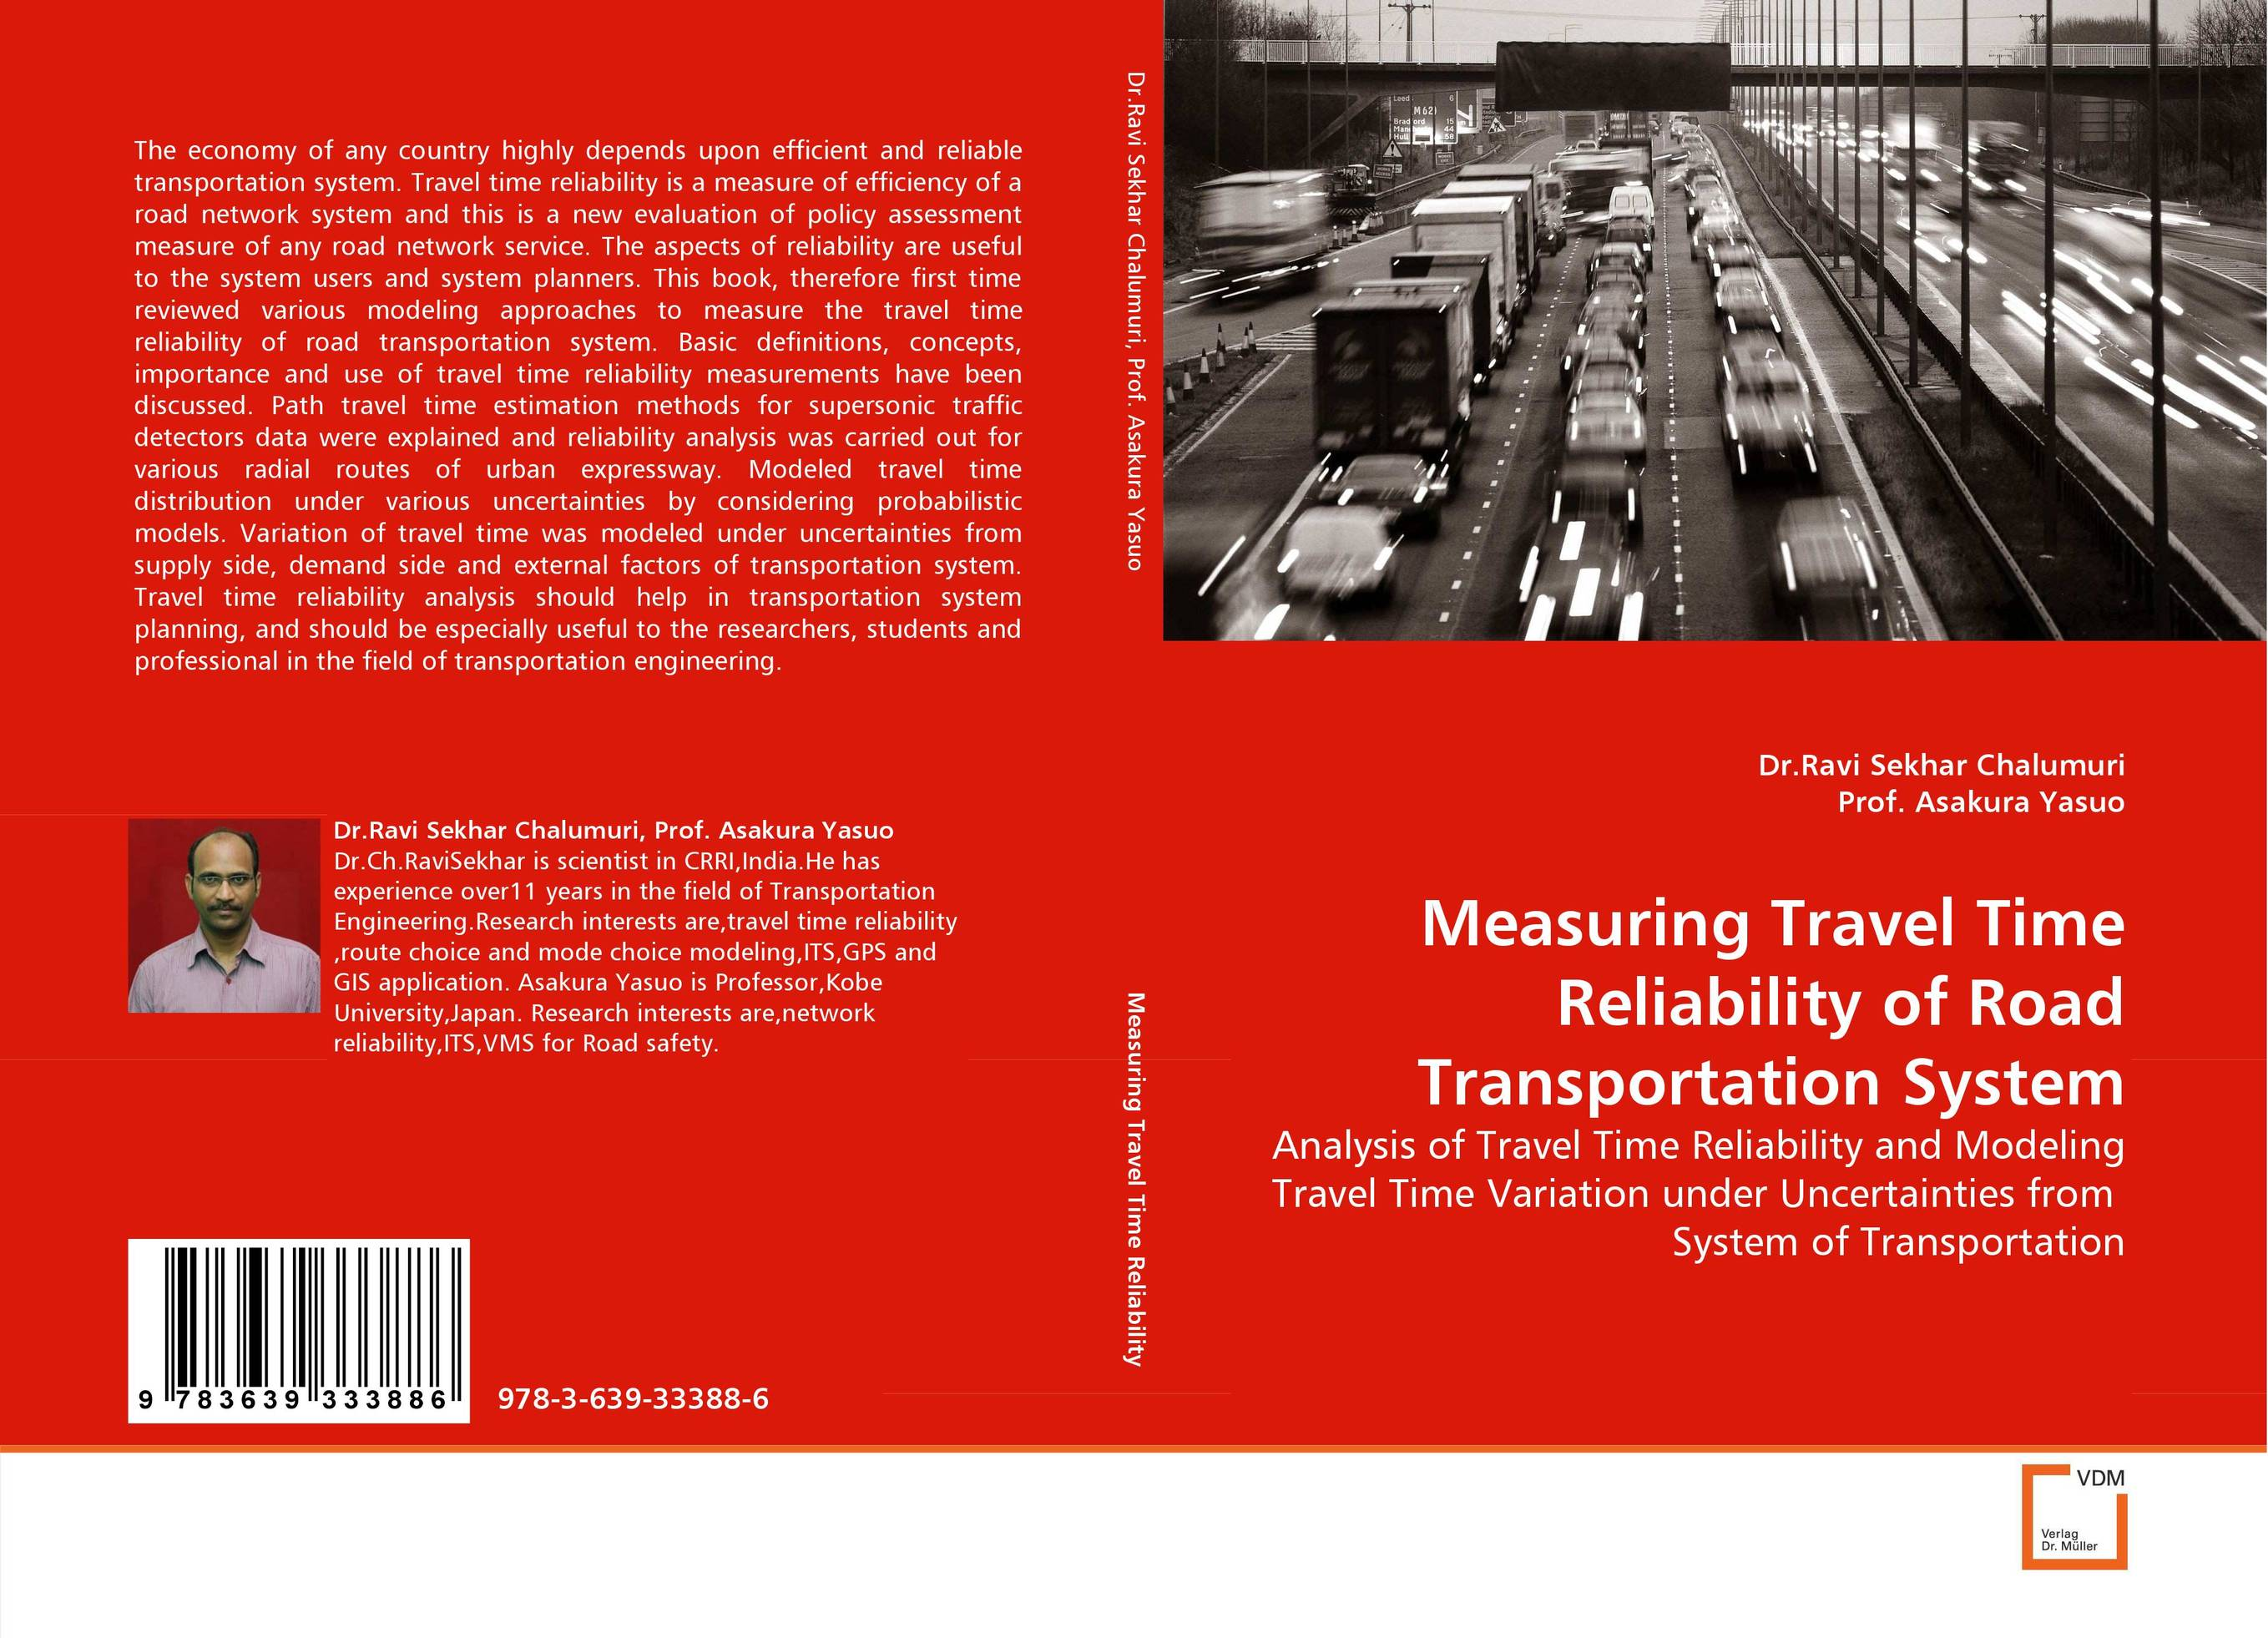 Measuring Travel Time Reliability of Road Transportation System набор с покрывалом пике travel time